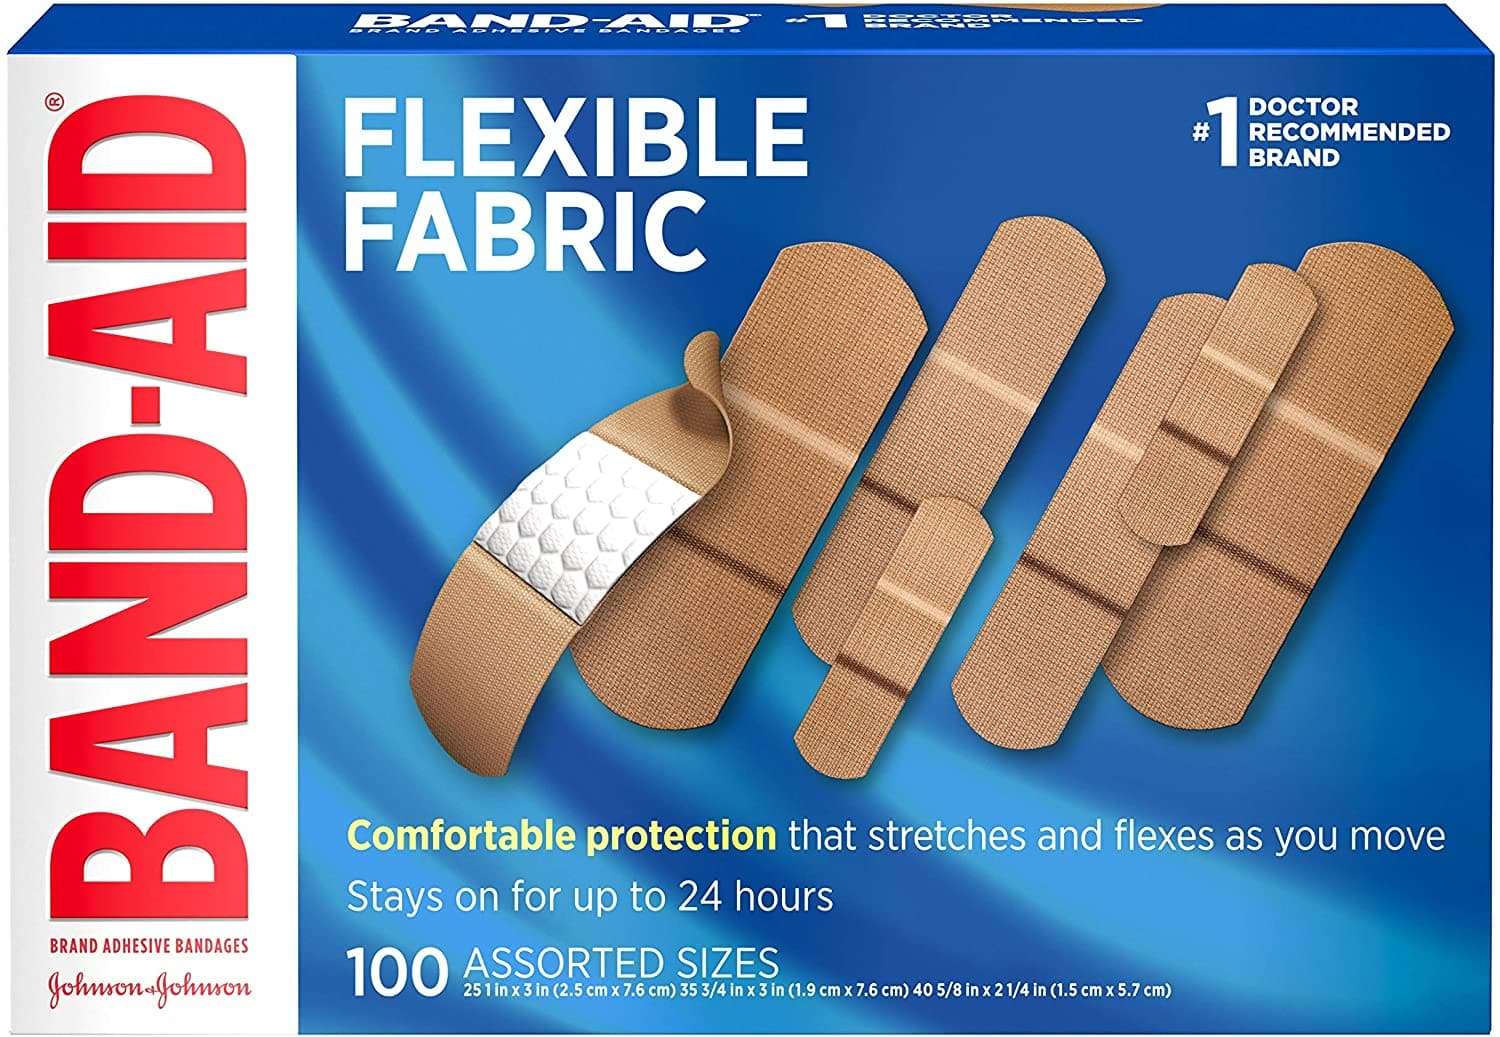 100-Count Band-Aid Flexible Fabric Adhesive Bandages (Assorted Sizes) $5.50 w/ S&S + Free Shipping w/ Prime or on $25+